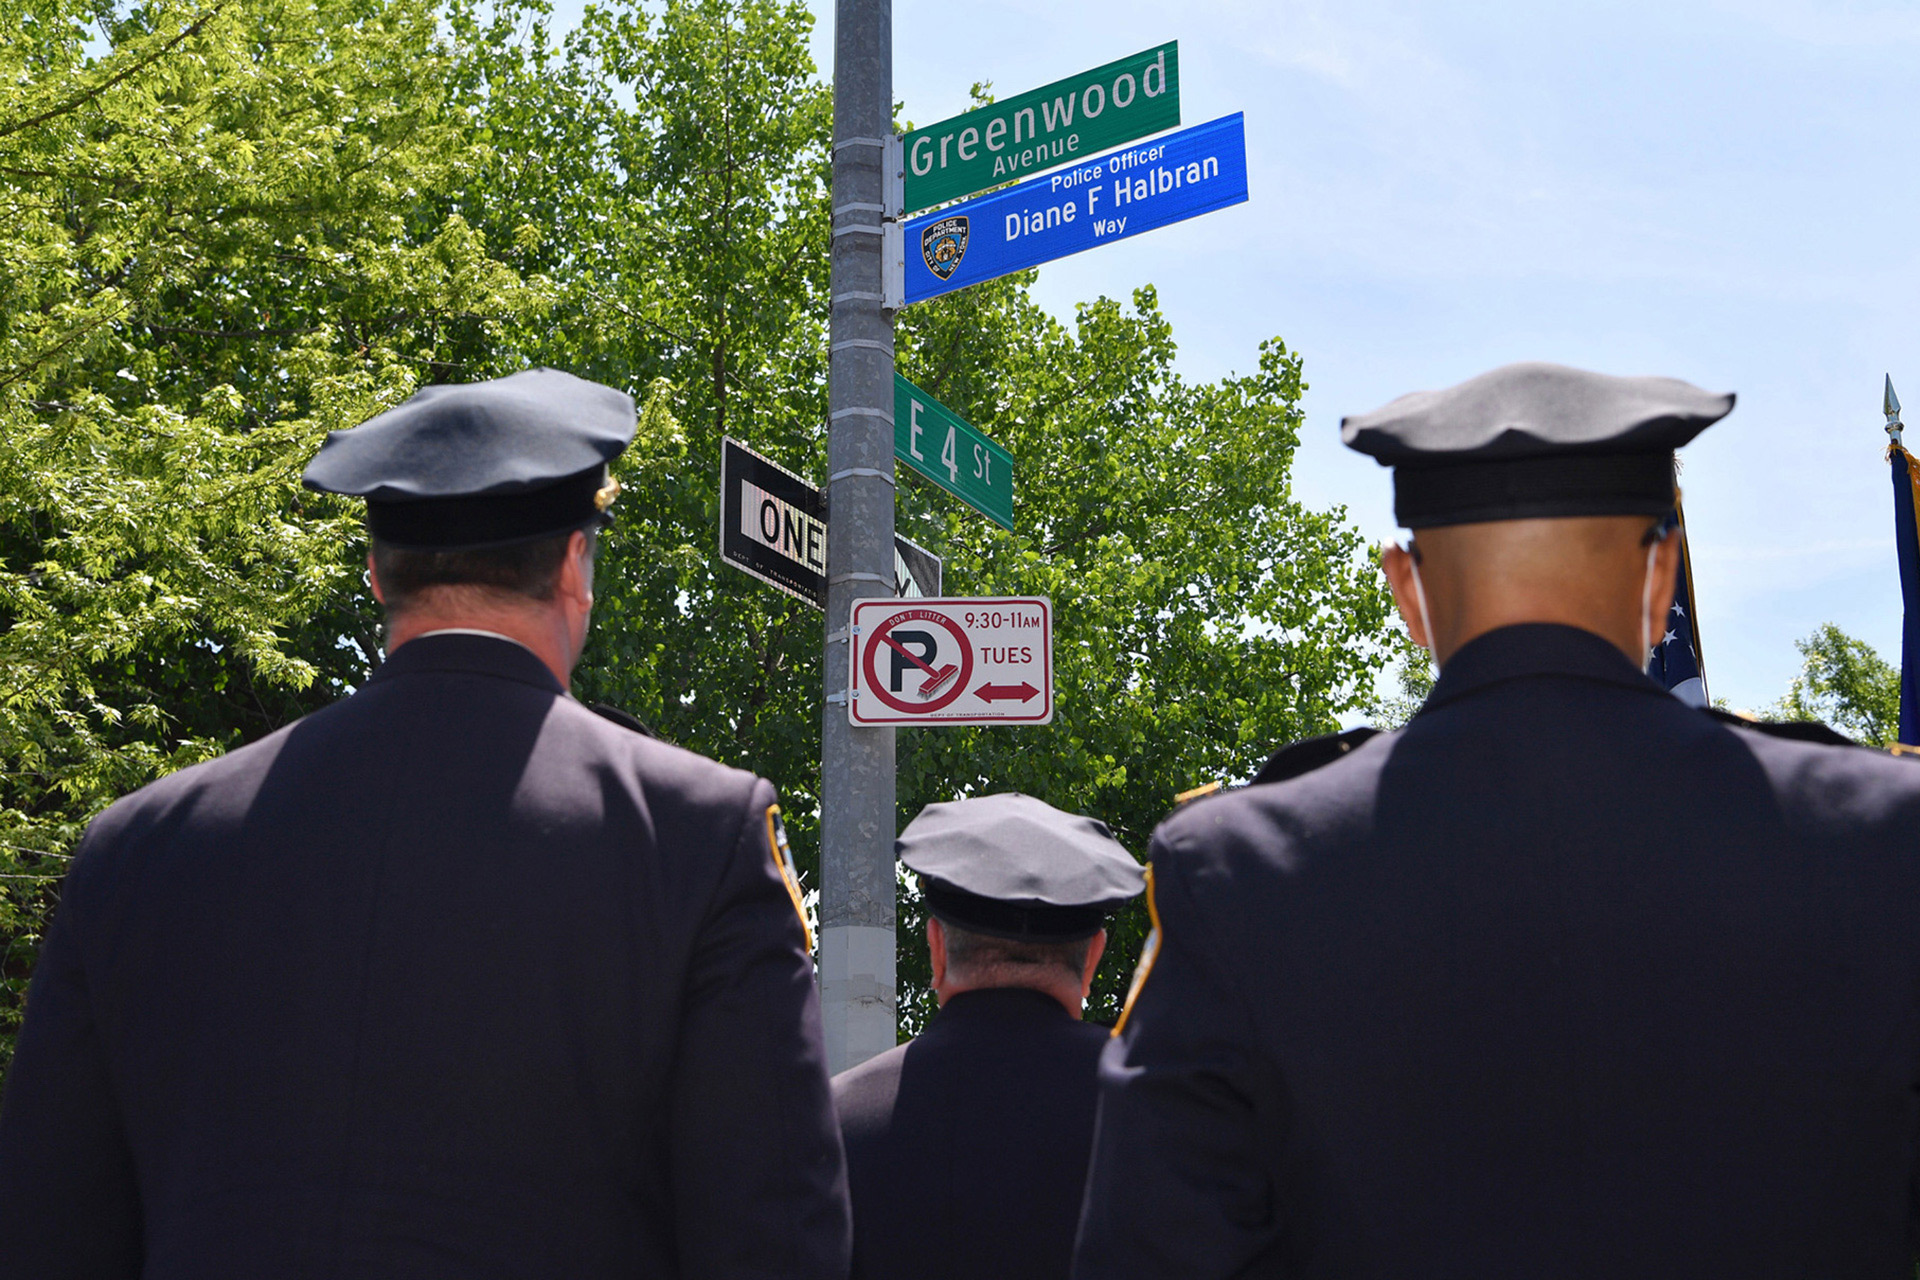 diane-halbran-street-renaming-3-Police-stand-near-the-sign-during-the-street-renaming-ceremony